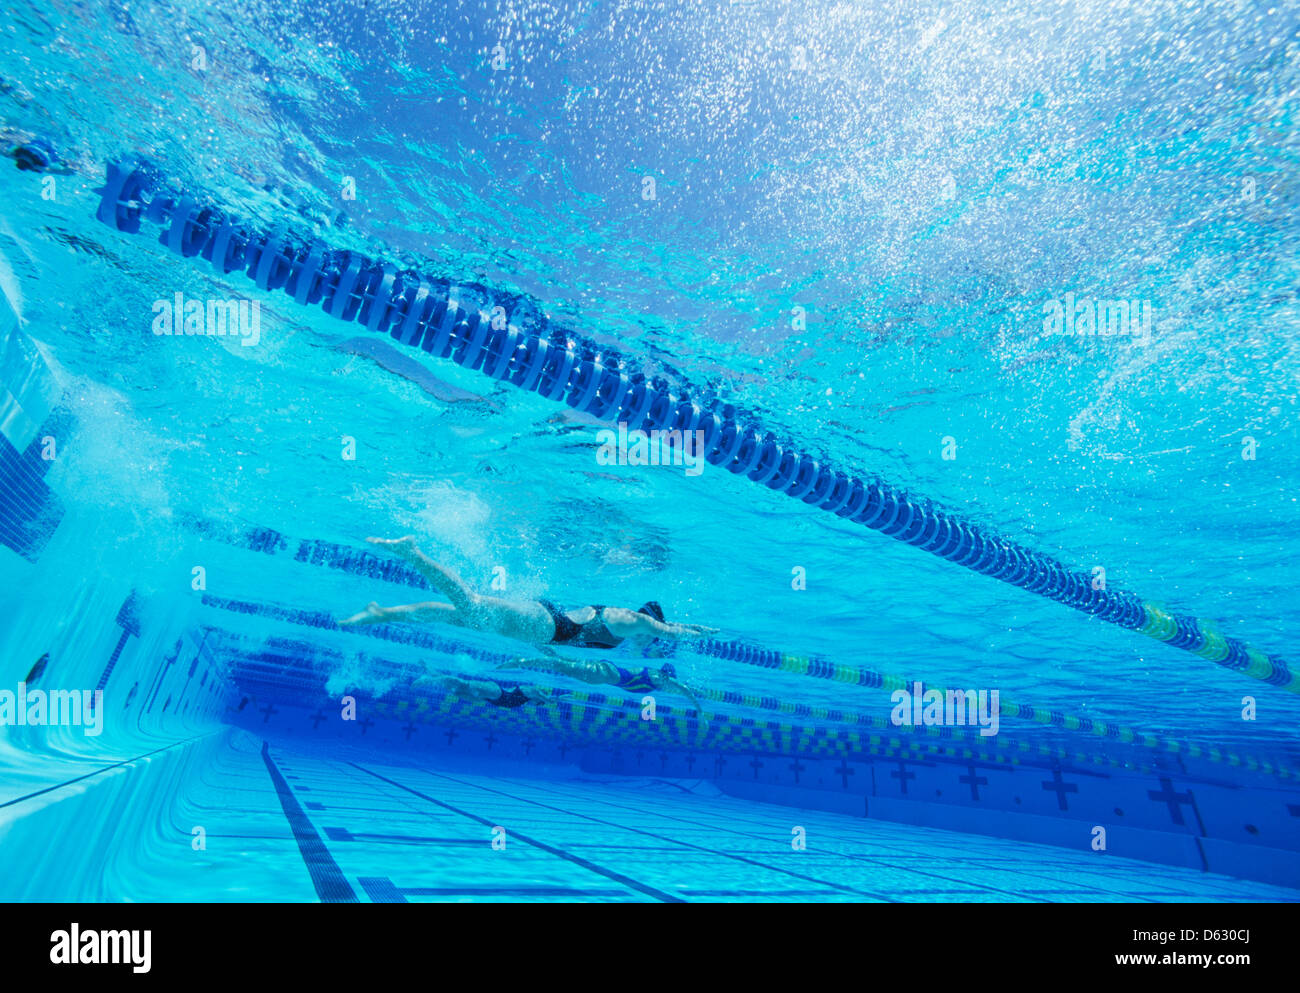 Swimmers racing together in swimming pool - Stock Image